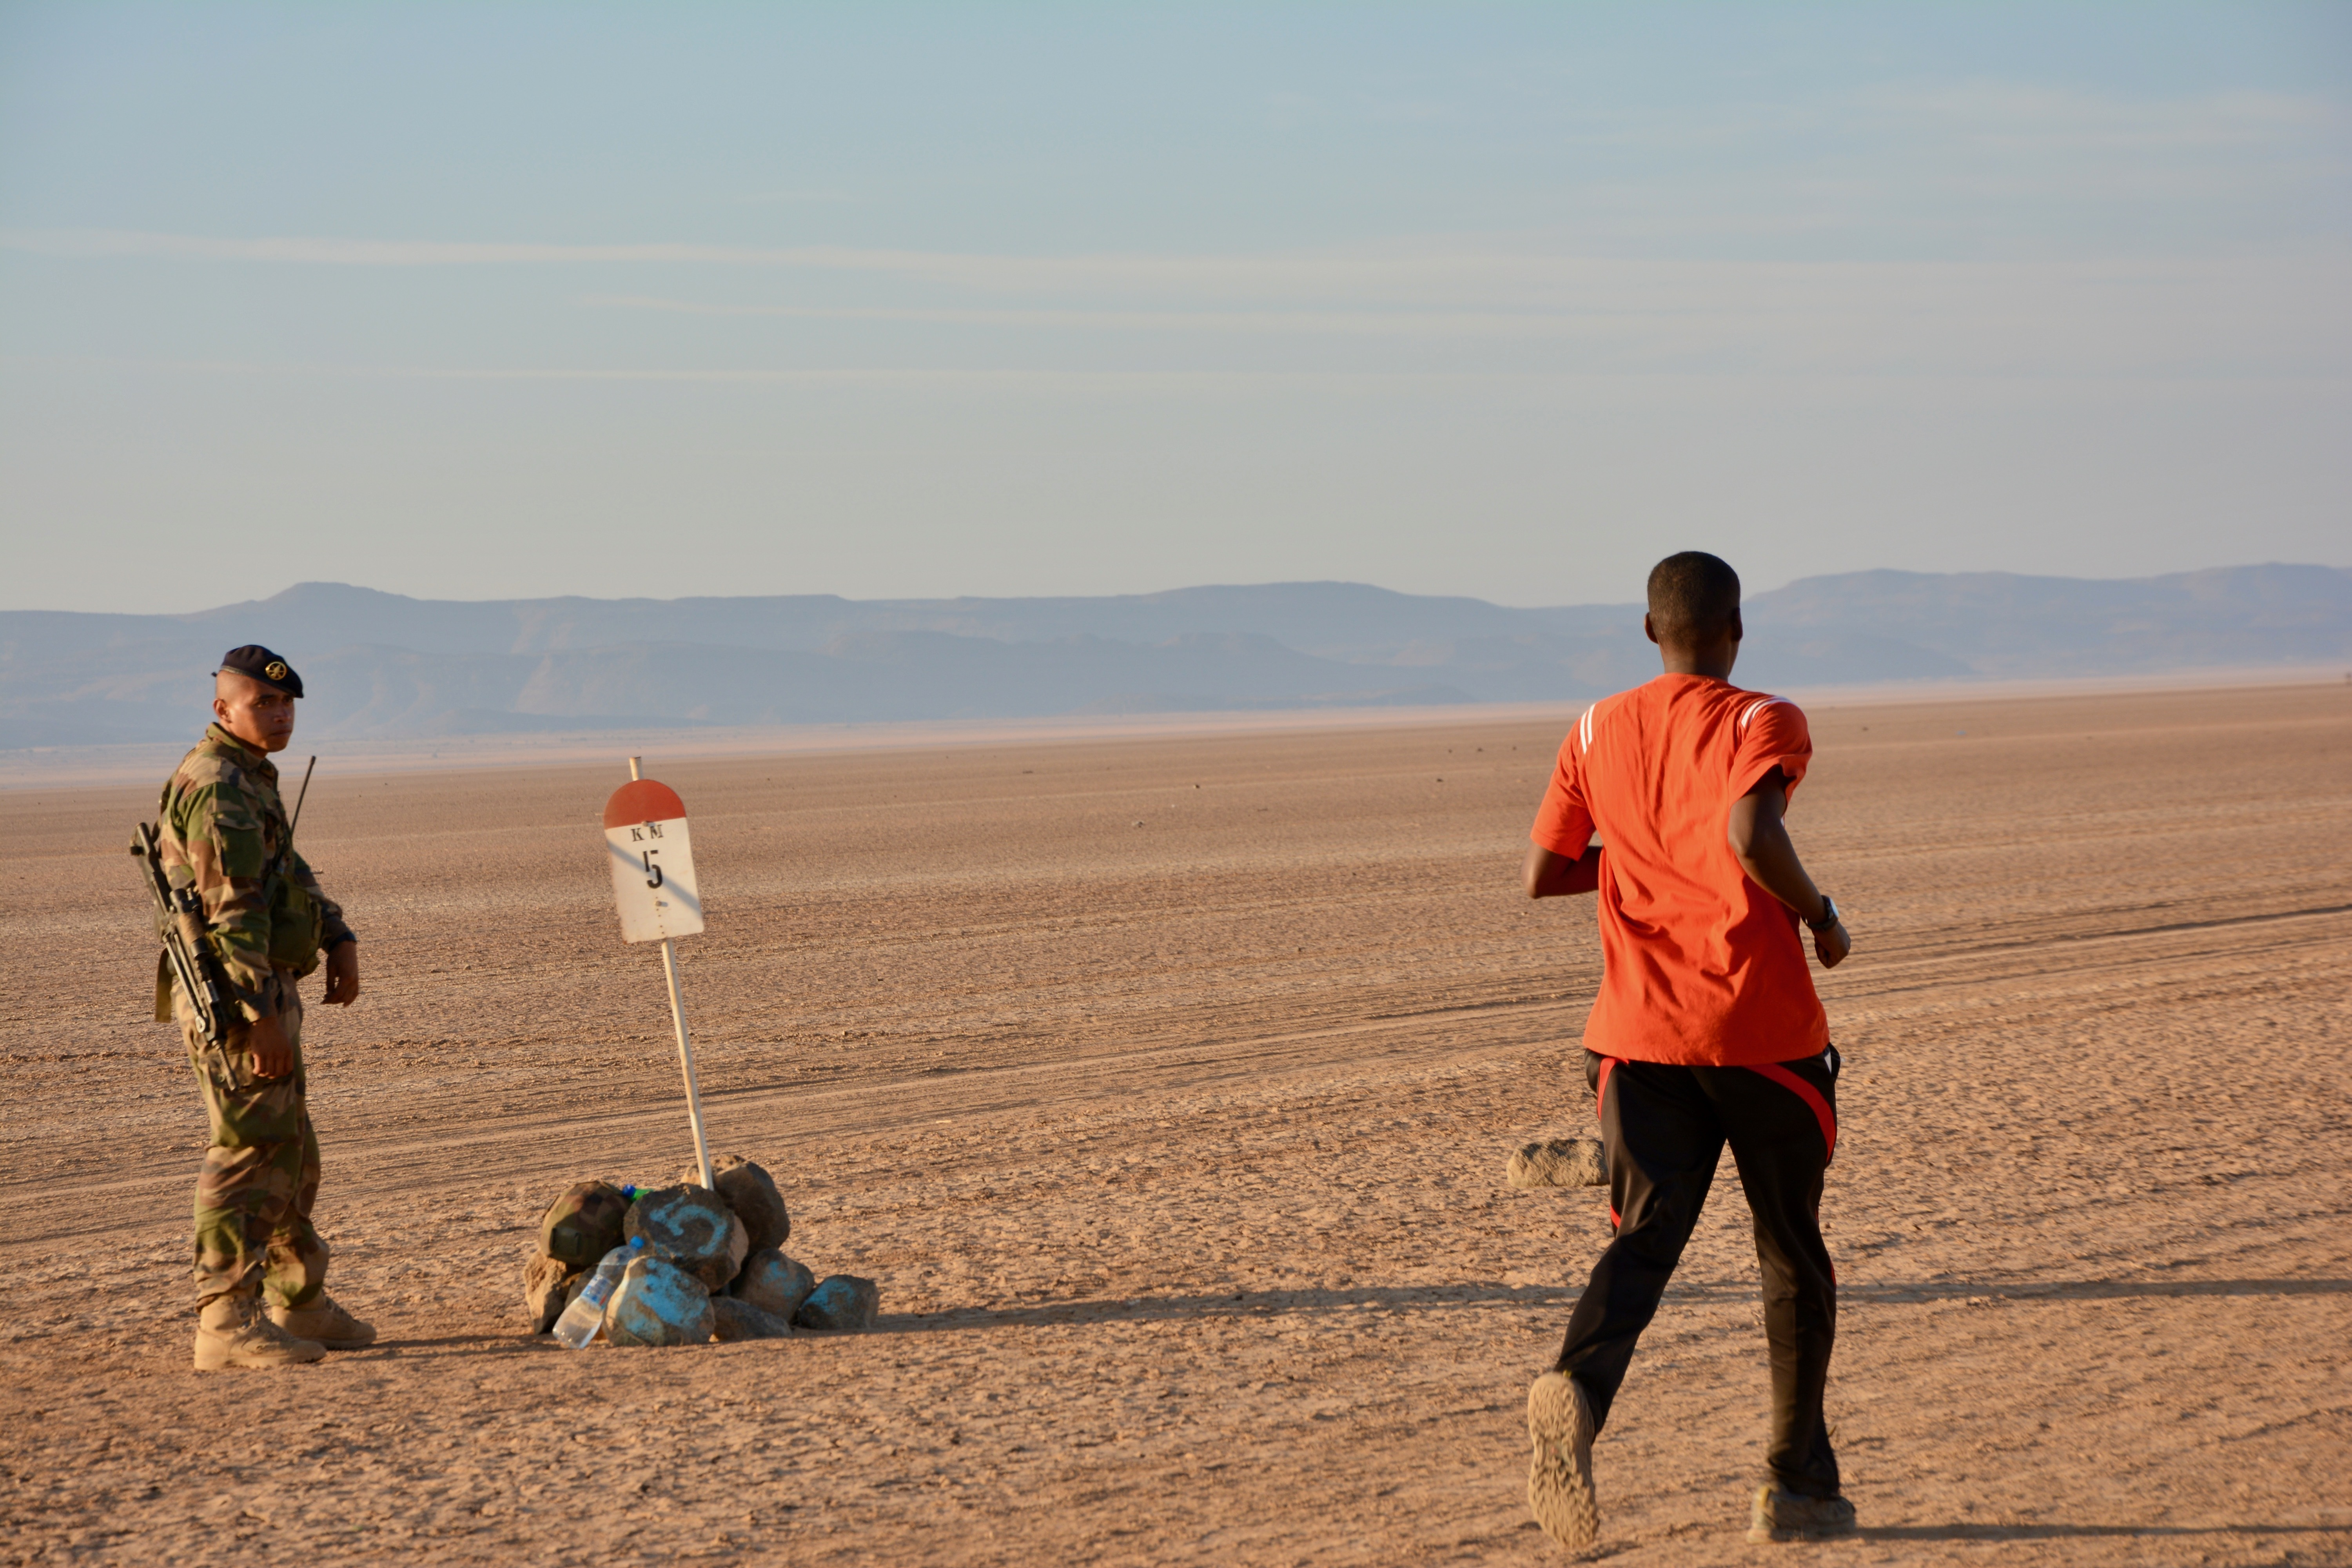 A runner approaches a kilometer marker during a 15-kilometer run through the Grand Bara Desert in Djibouti. Hosted by the French Foreign Legion, nearly 200 members of Combined Joint Task Force – Horn of Africa ran alongside 2,500 Djiboutian, Chinese, and coalition service members and civilians during the race across a stretch of Djibouti's Grand Bara Desert, Dec. 13. (U.S. Army photo by Capt. Olivia Cobiskey)